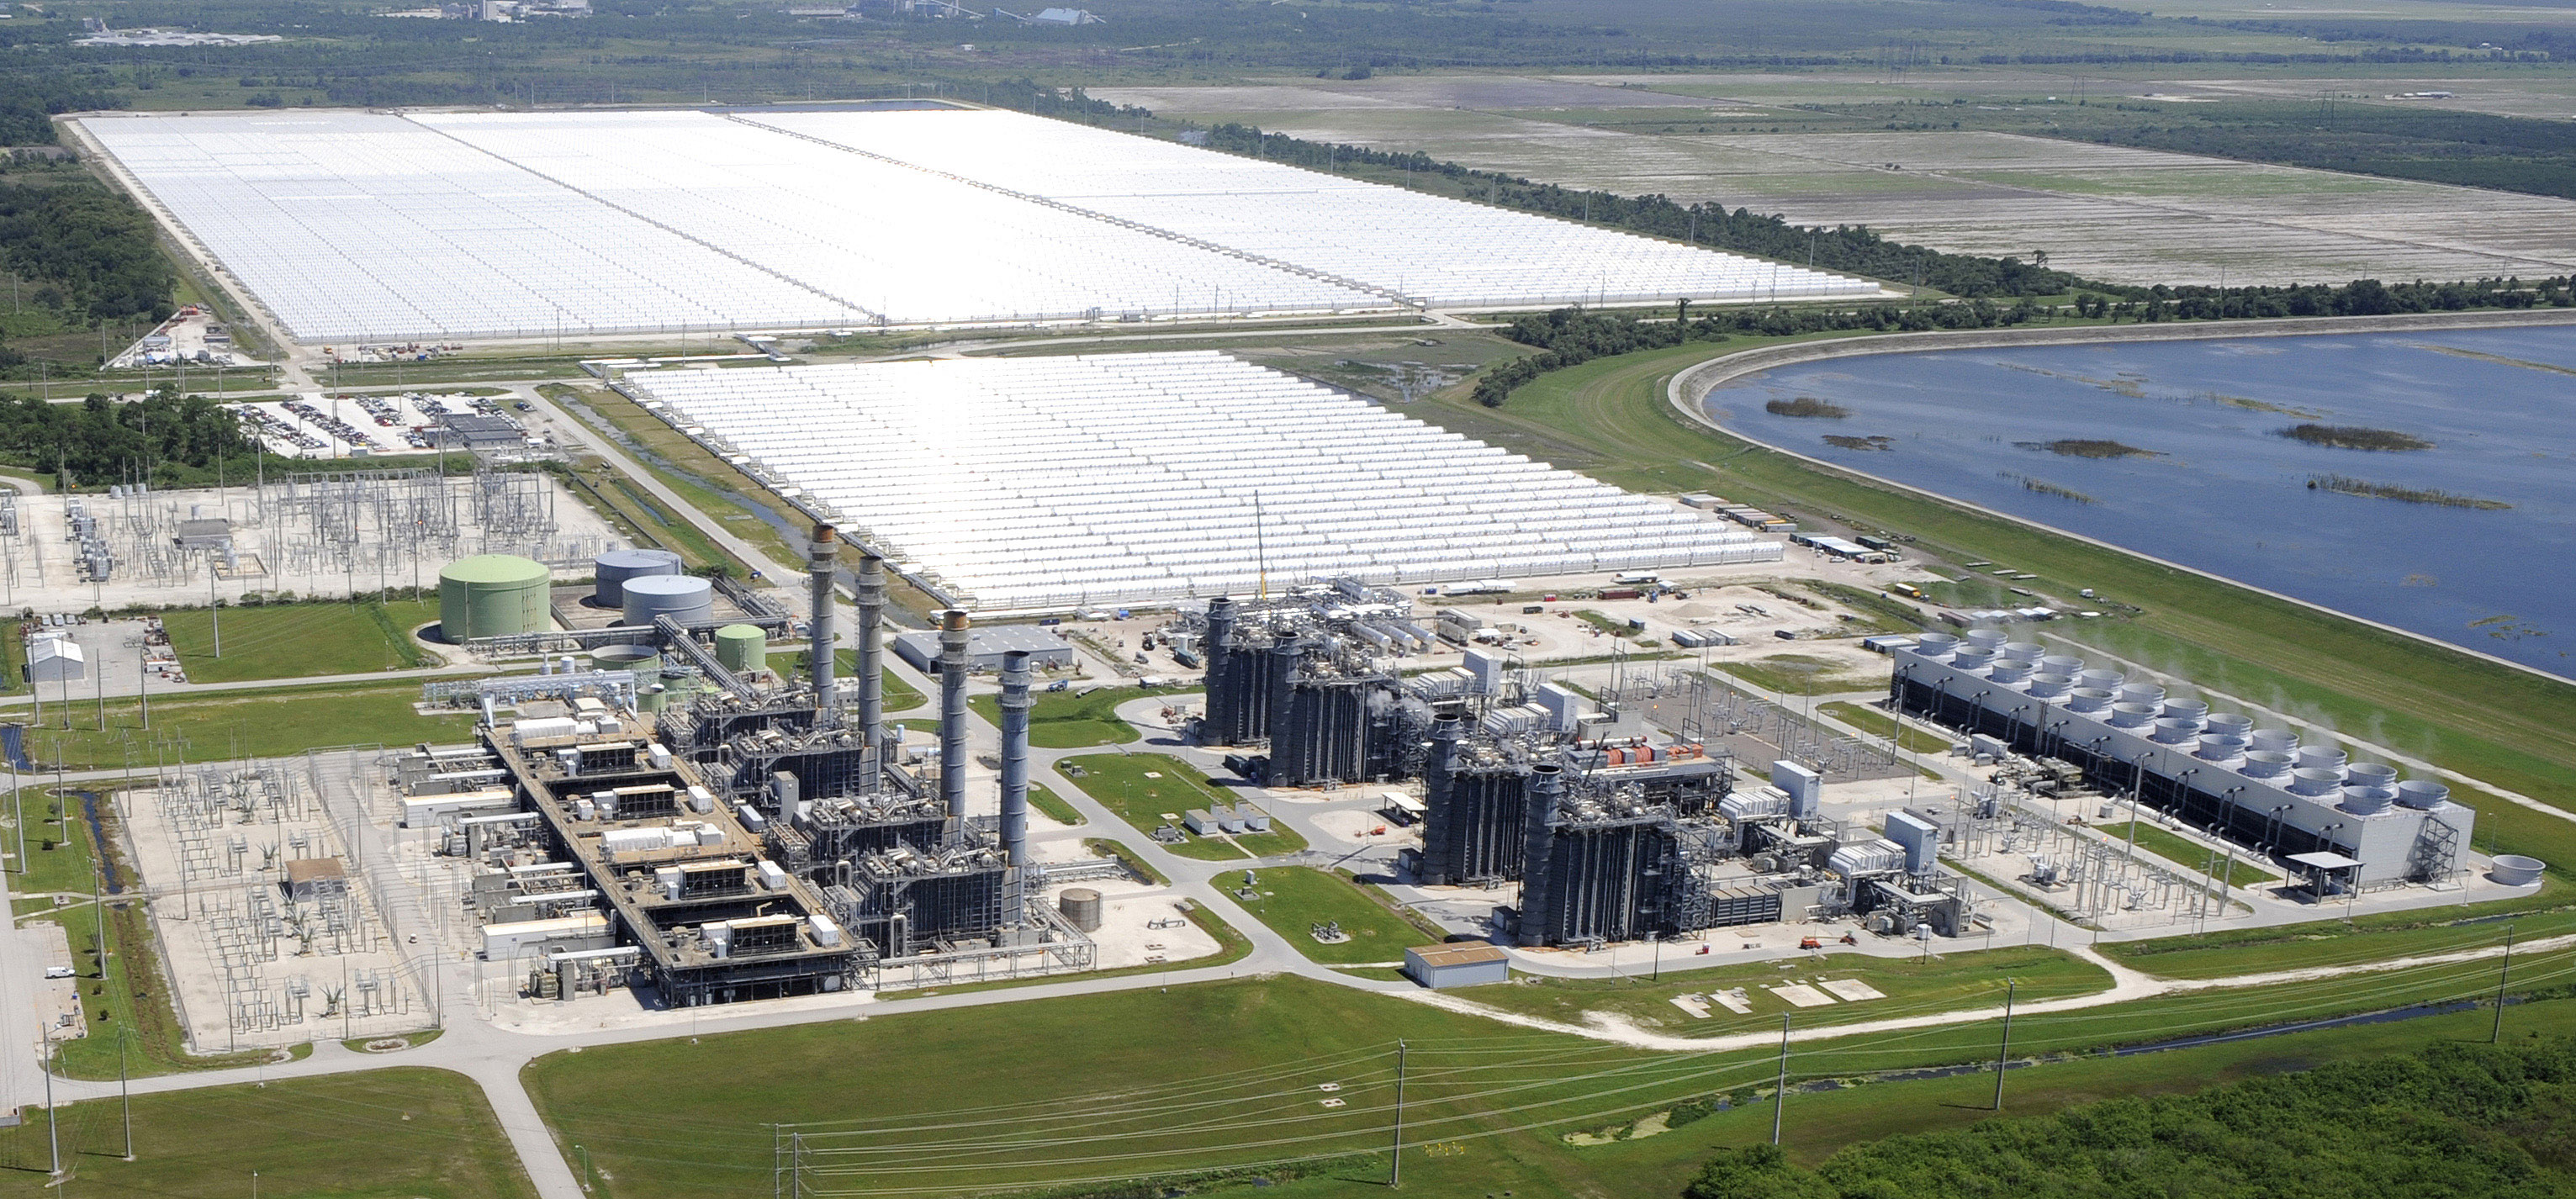 Aerial View Of Florida Power U0026 Light Companyu0027s Martin Next Generation Solar  Energy Center On Thursday,Sept. 2, 2010, In Indiantown, Fla.